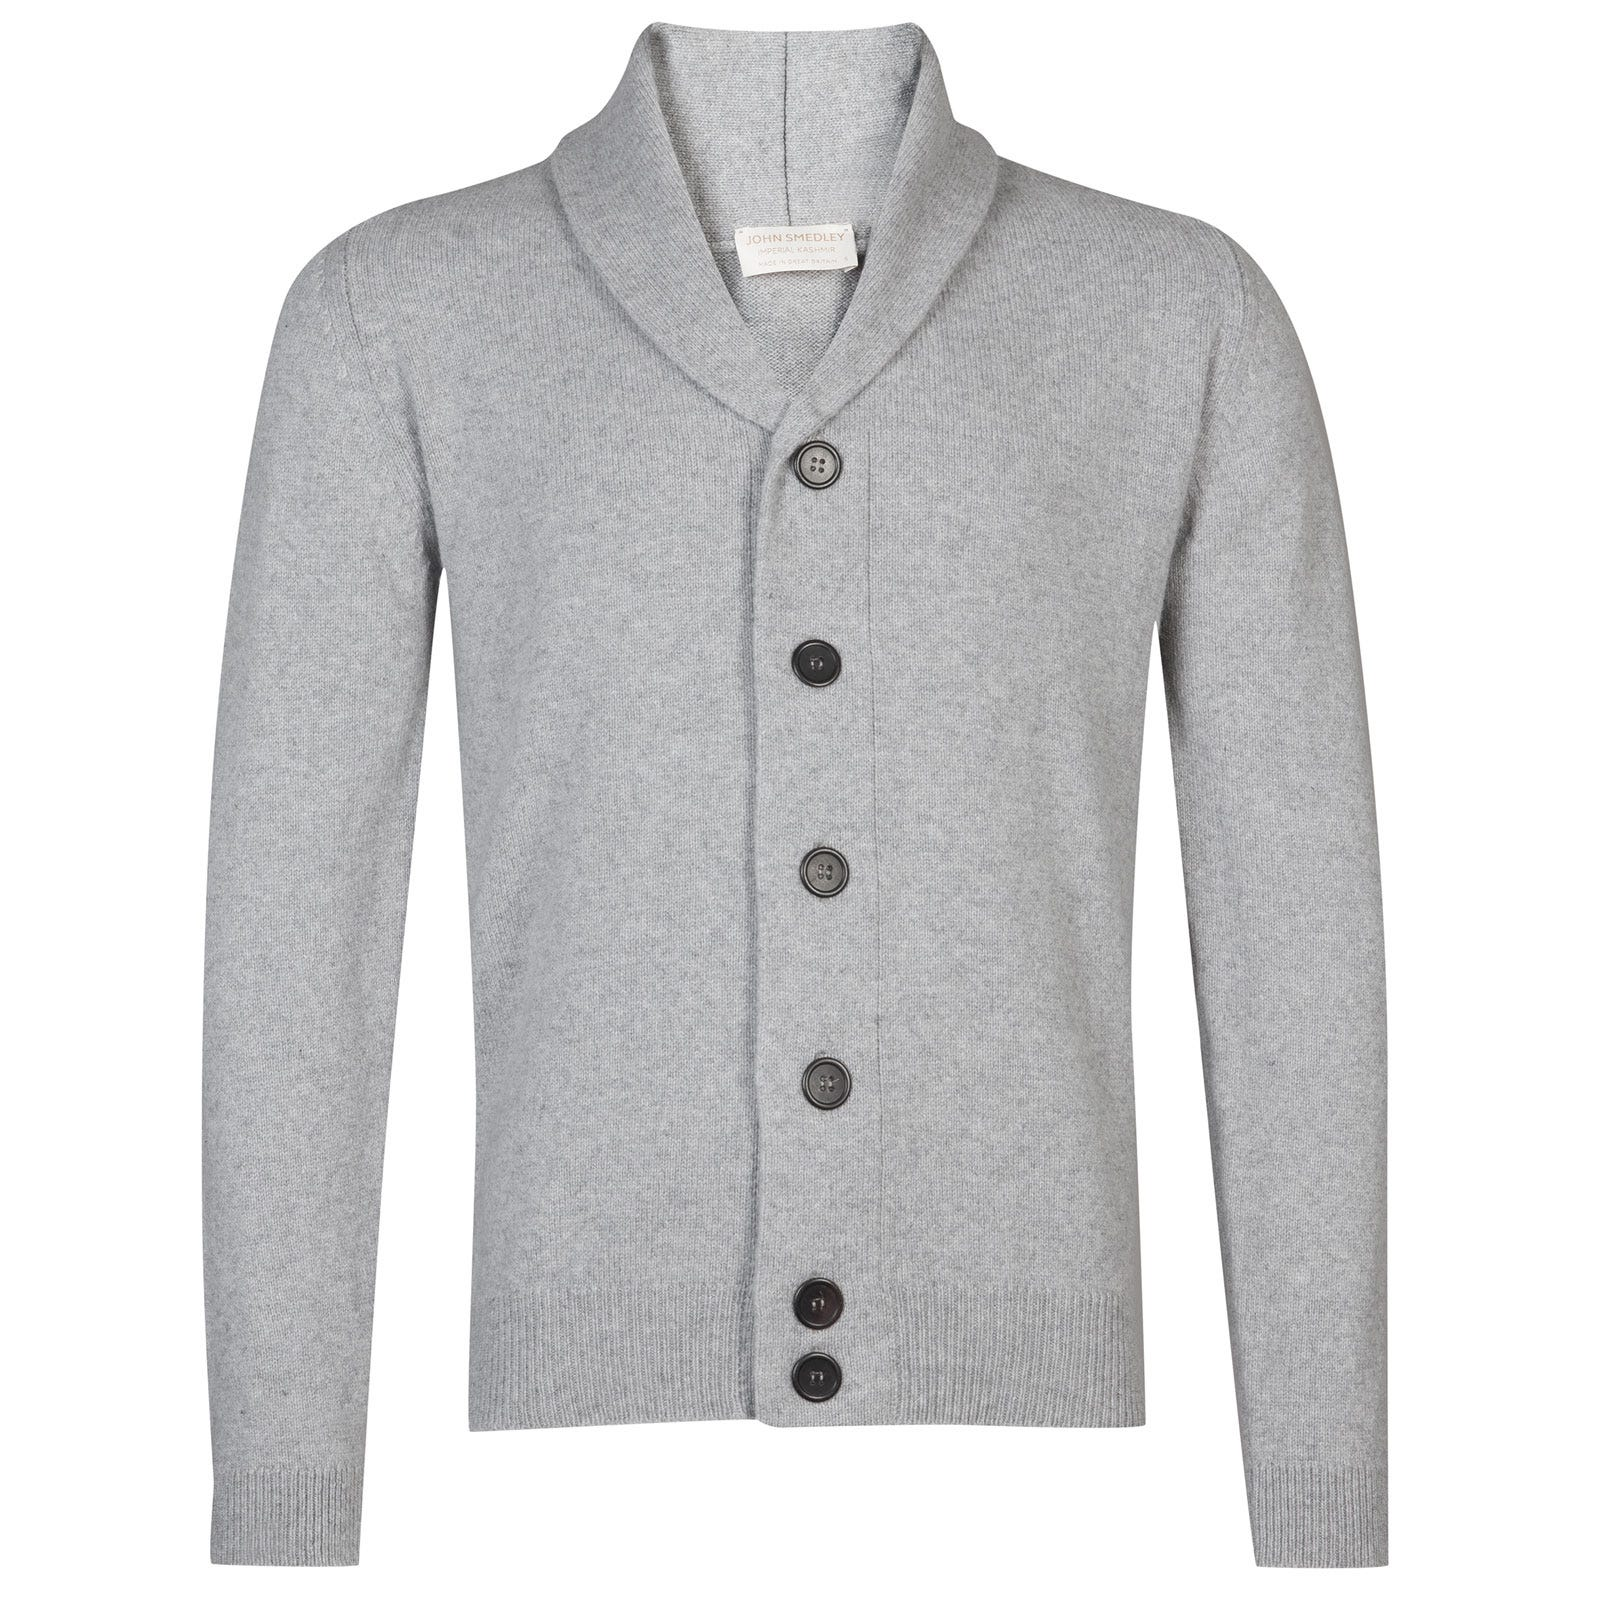 John Smedley patterson Wool and Cashmere Jacket in Silver-S